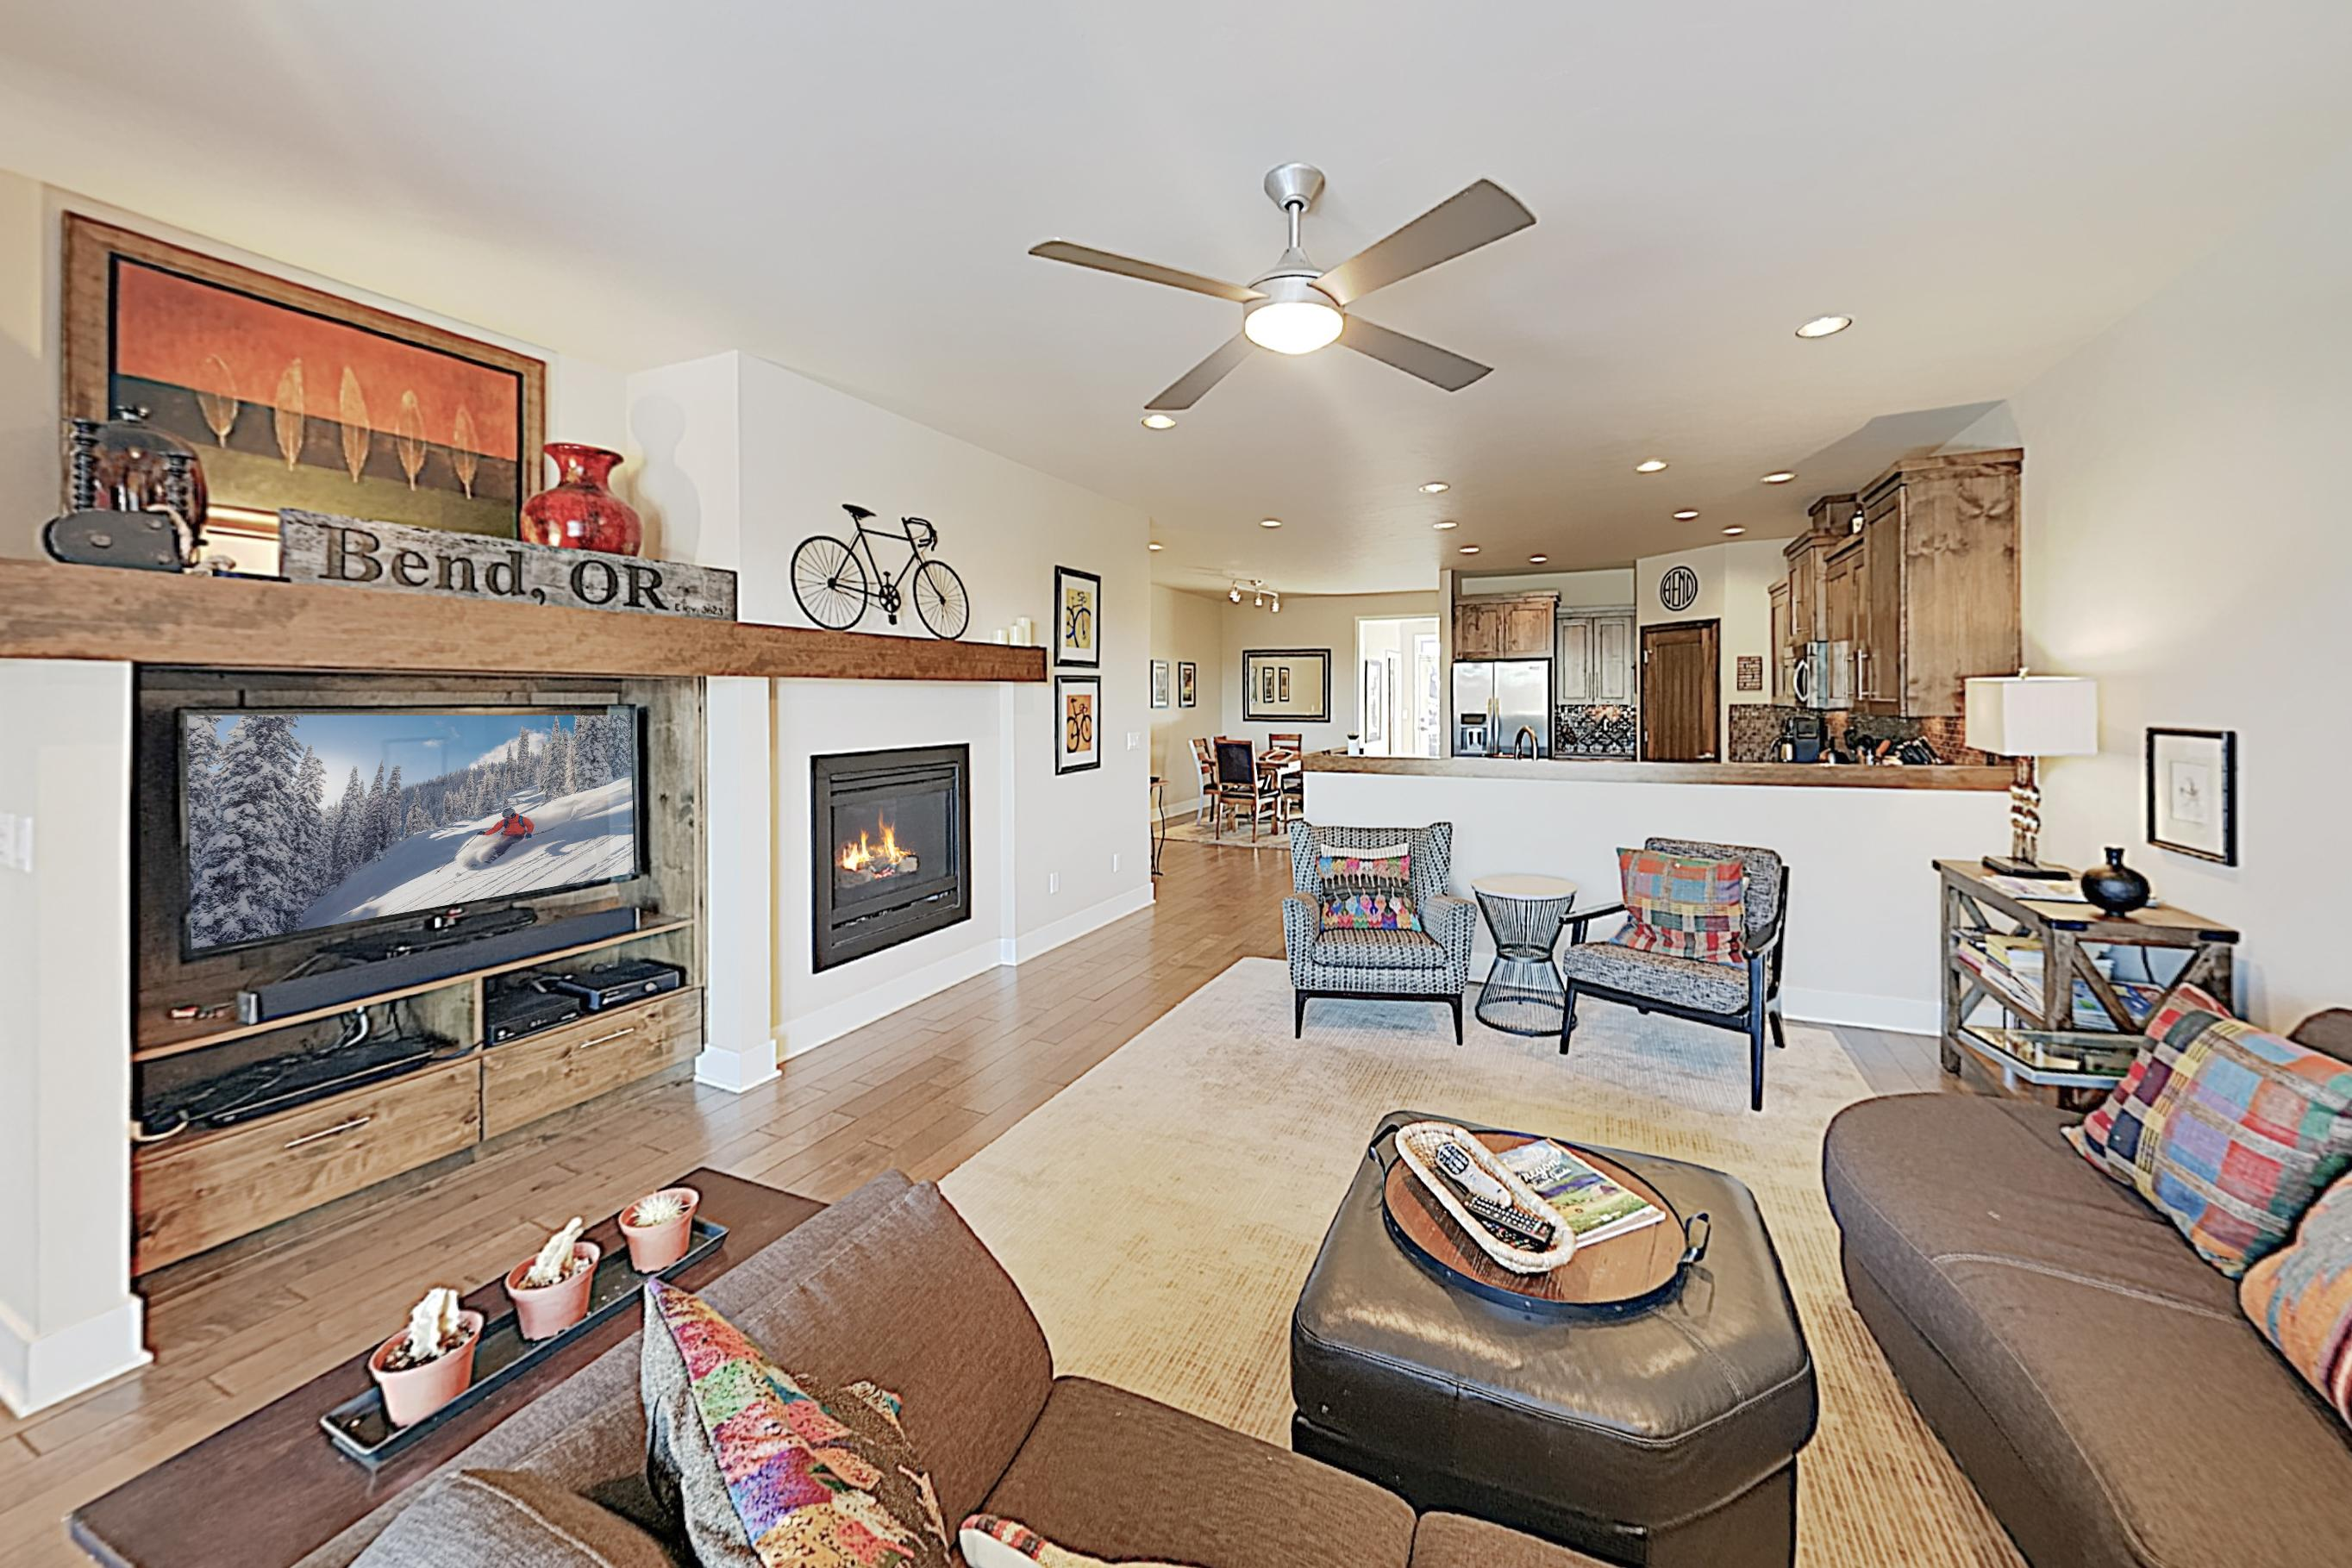 Welcome to Bend! This townhome is professionally managed by TurnKey Vacation Rentals.